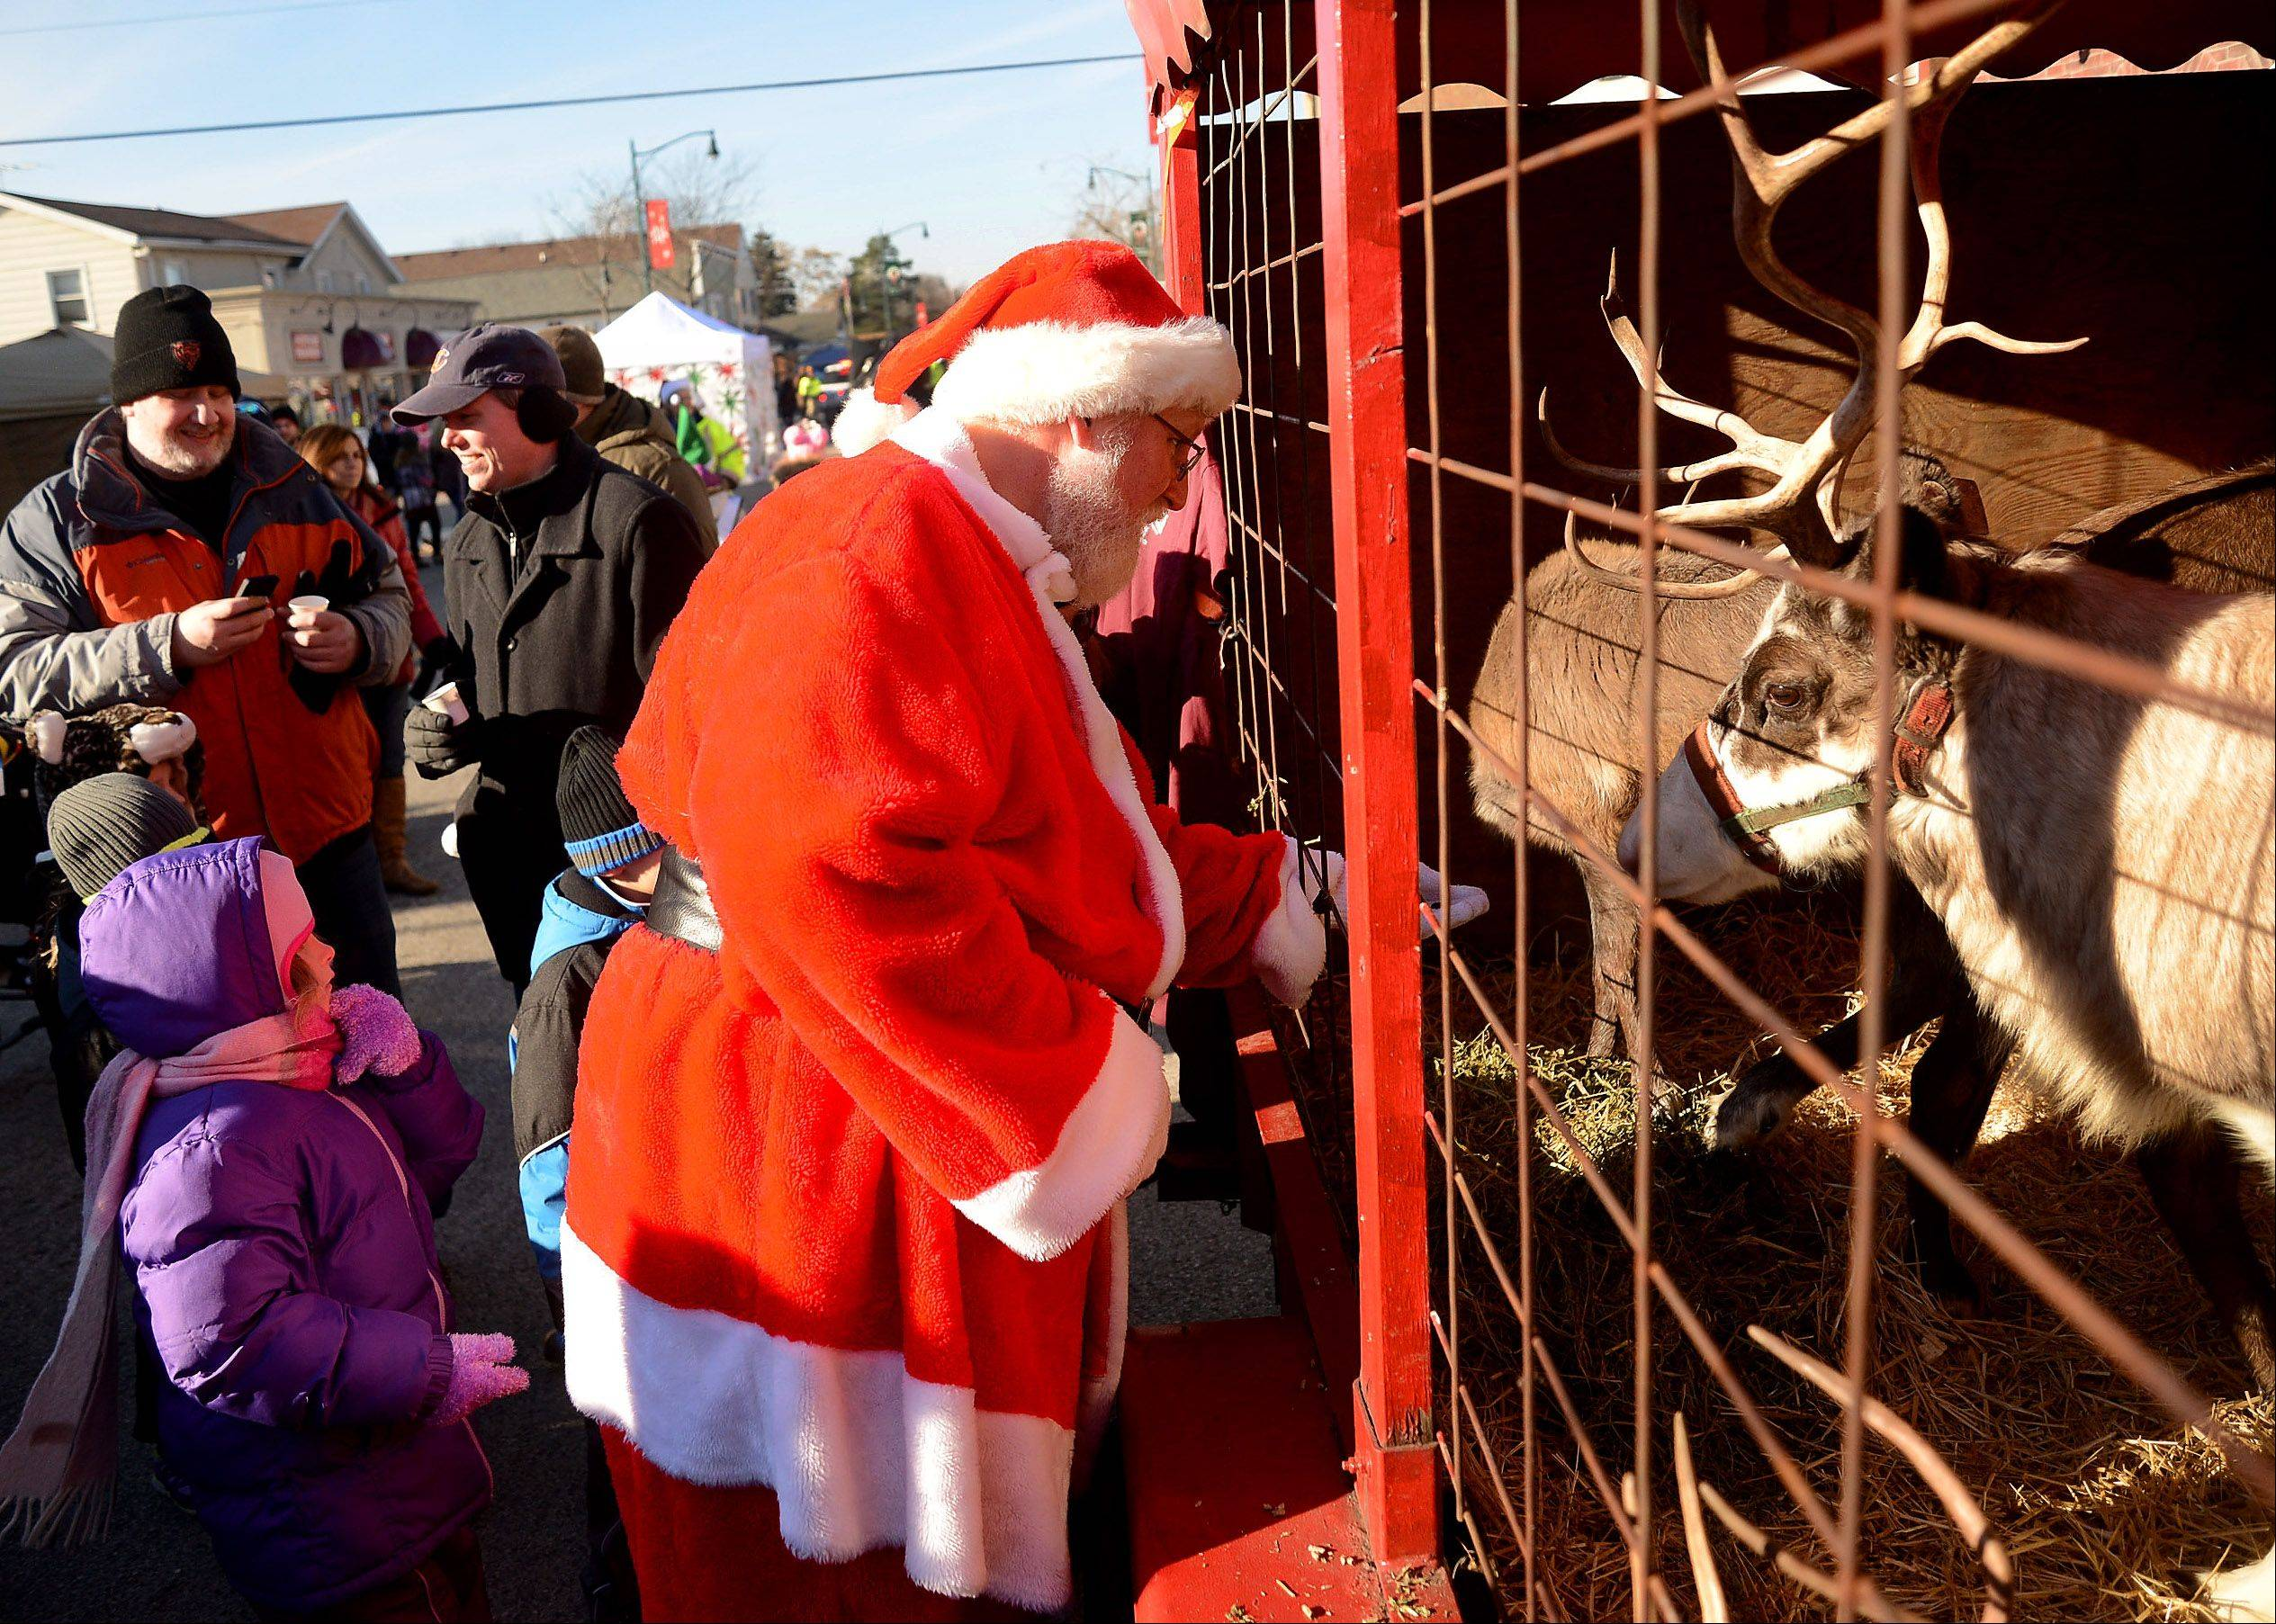 Santa arrives and feeds his reindeer at Wauconda's Holiday Walk.